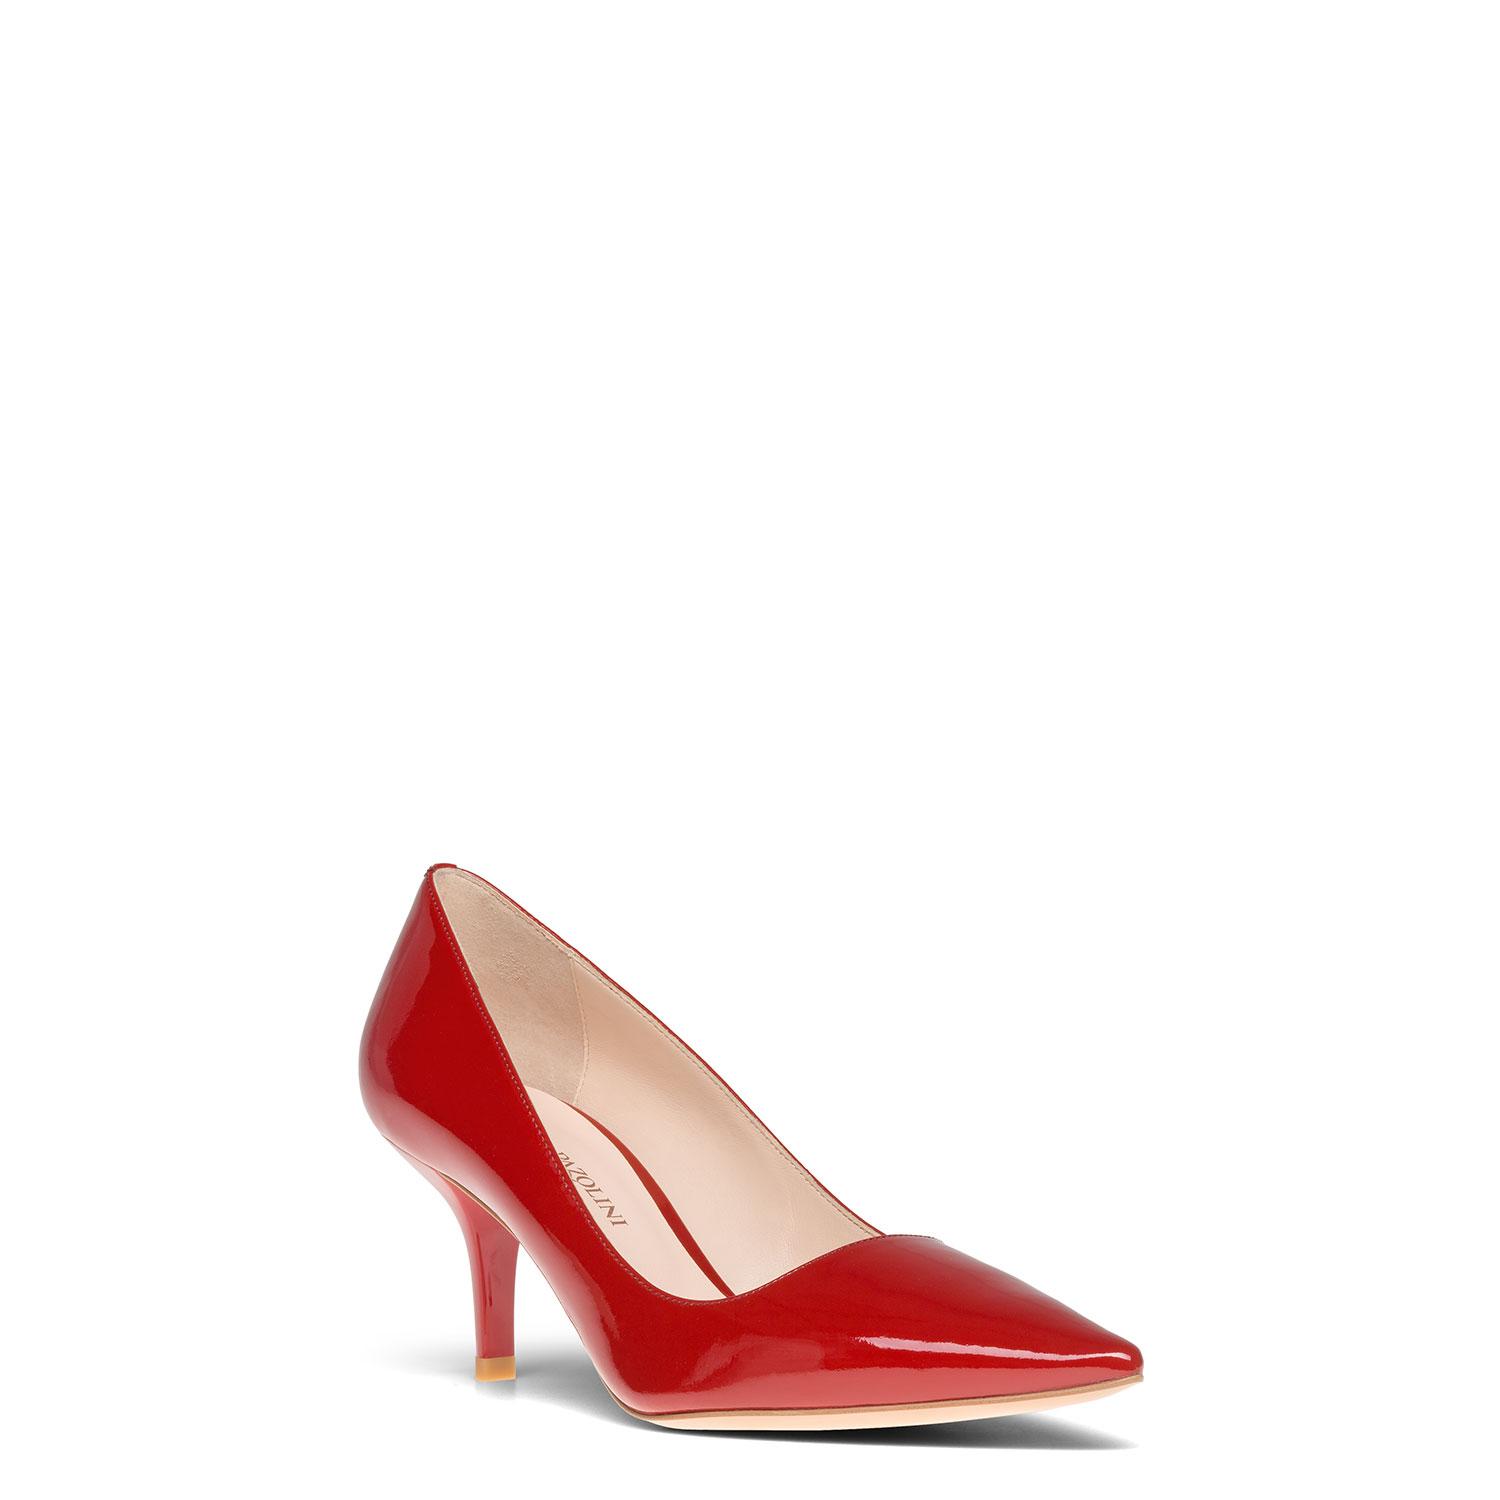 Women's shoes CARLO PAZOLINI FL-AEA1-5